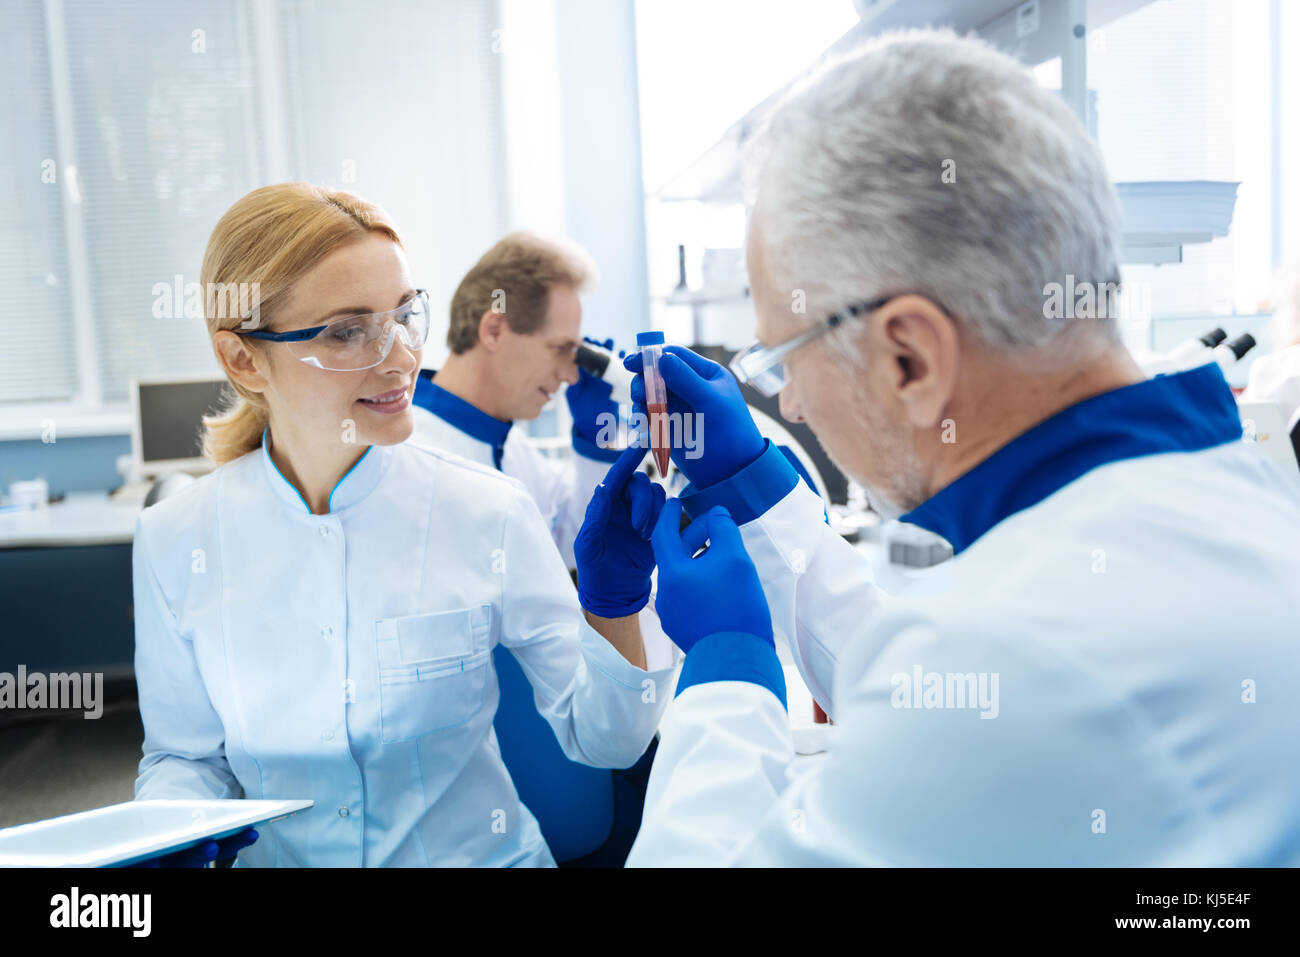 Chemical Process Stock Photos  Chemical Process Stock Images  Alamy